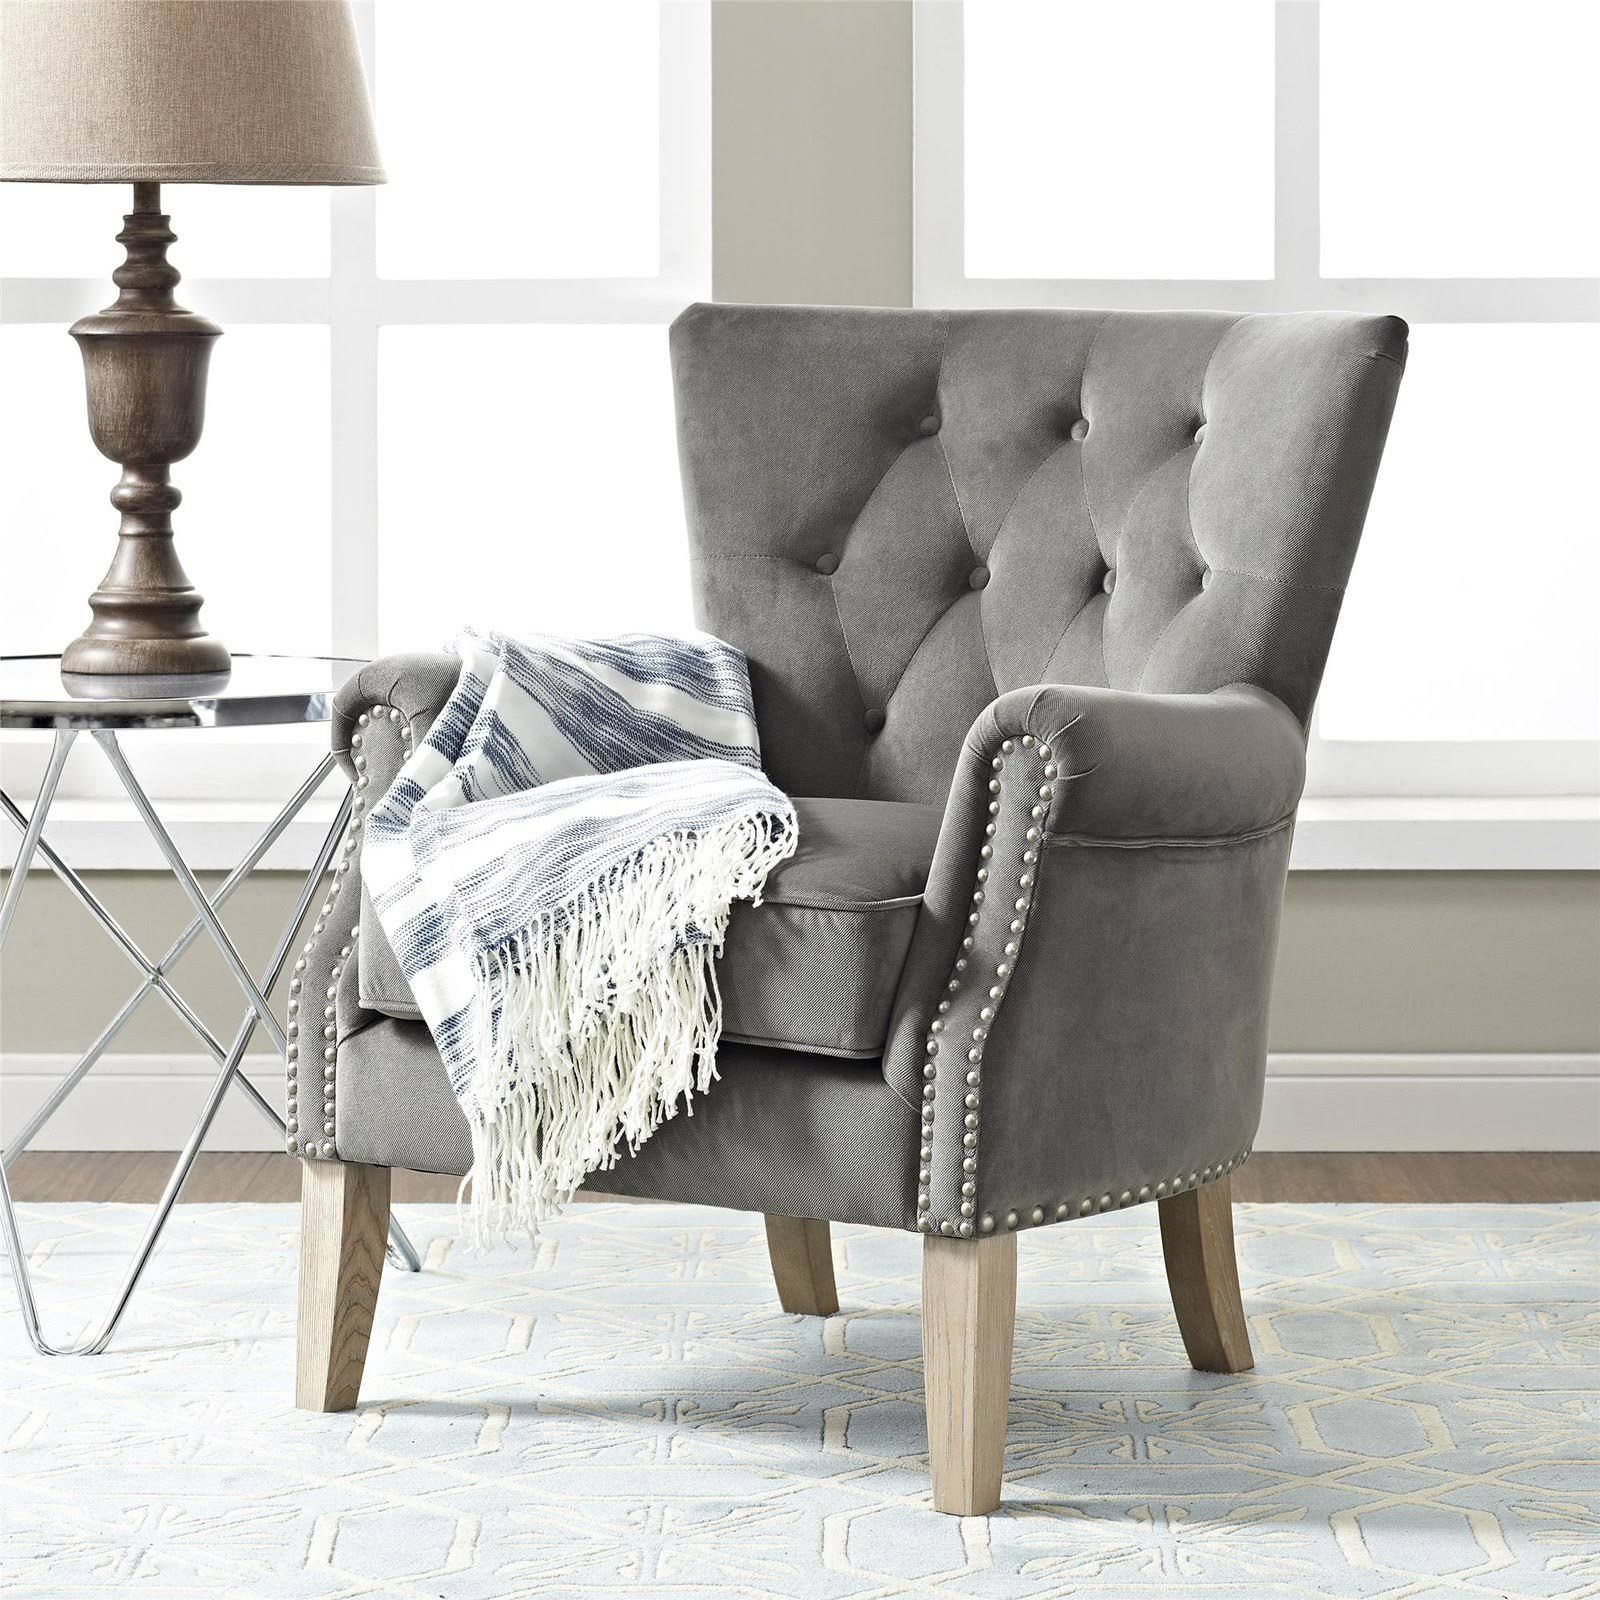 9c36c0910dd4d9f789b7bea5c18ca8dd - Better Homes And Gardens Rolled Arm Accent Chair Gray